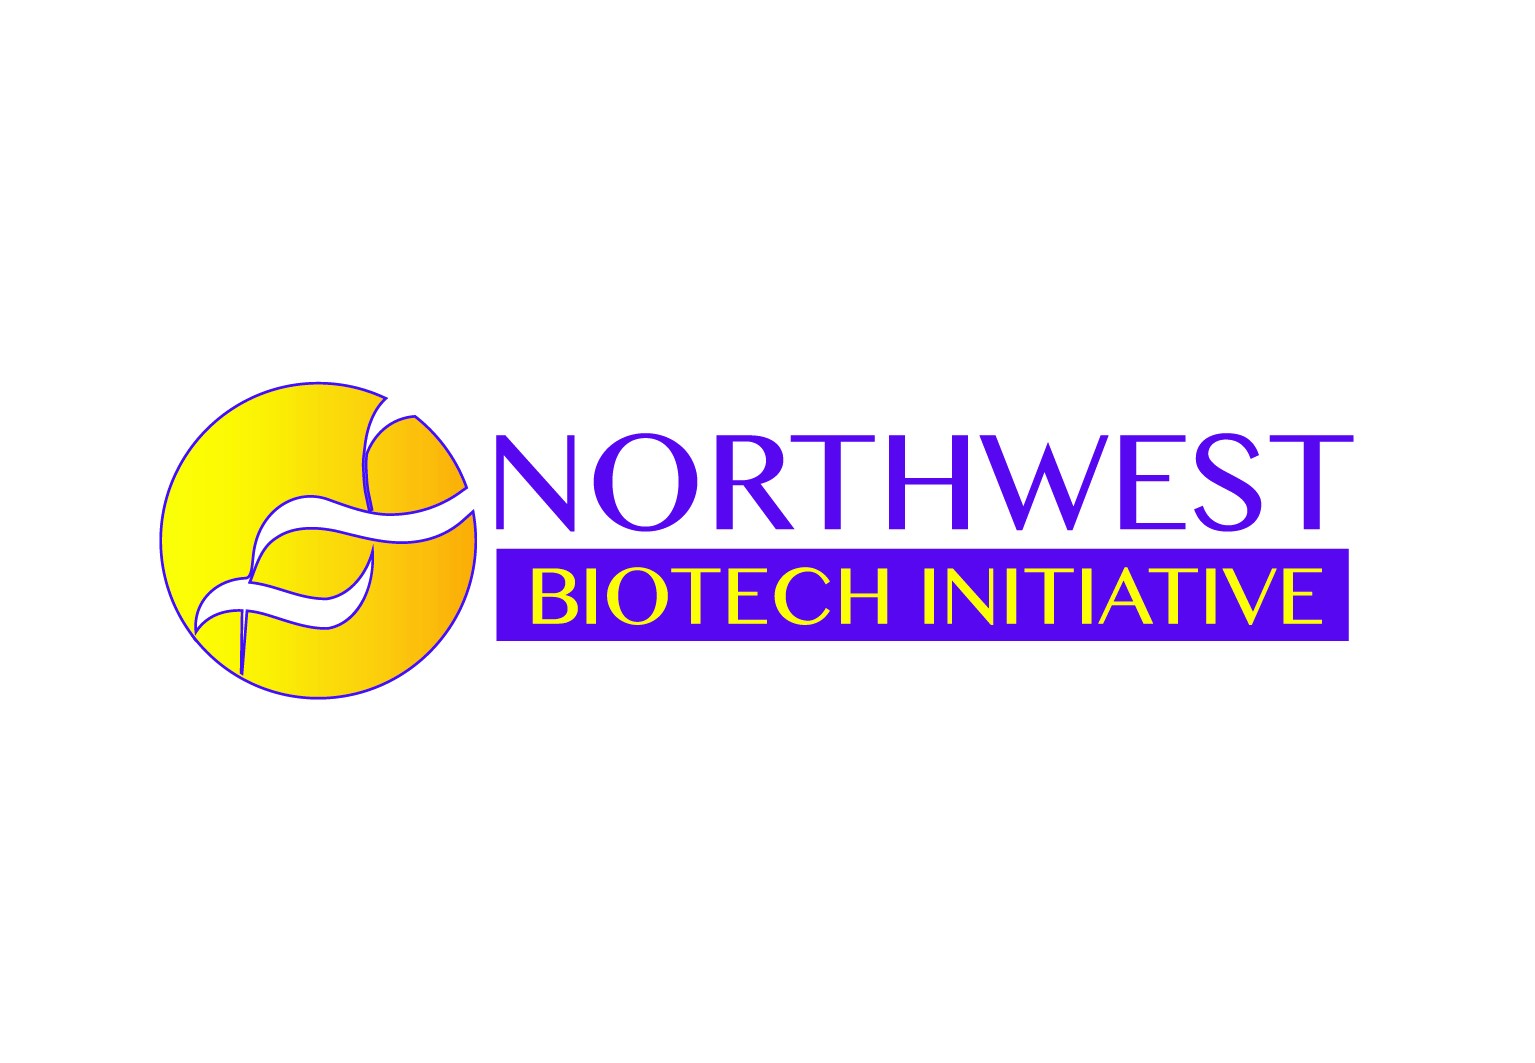 Northwest Biotech Initiative